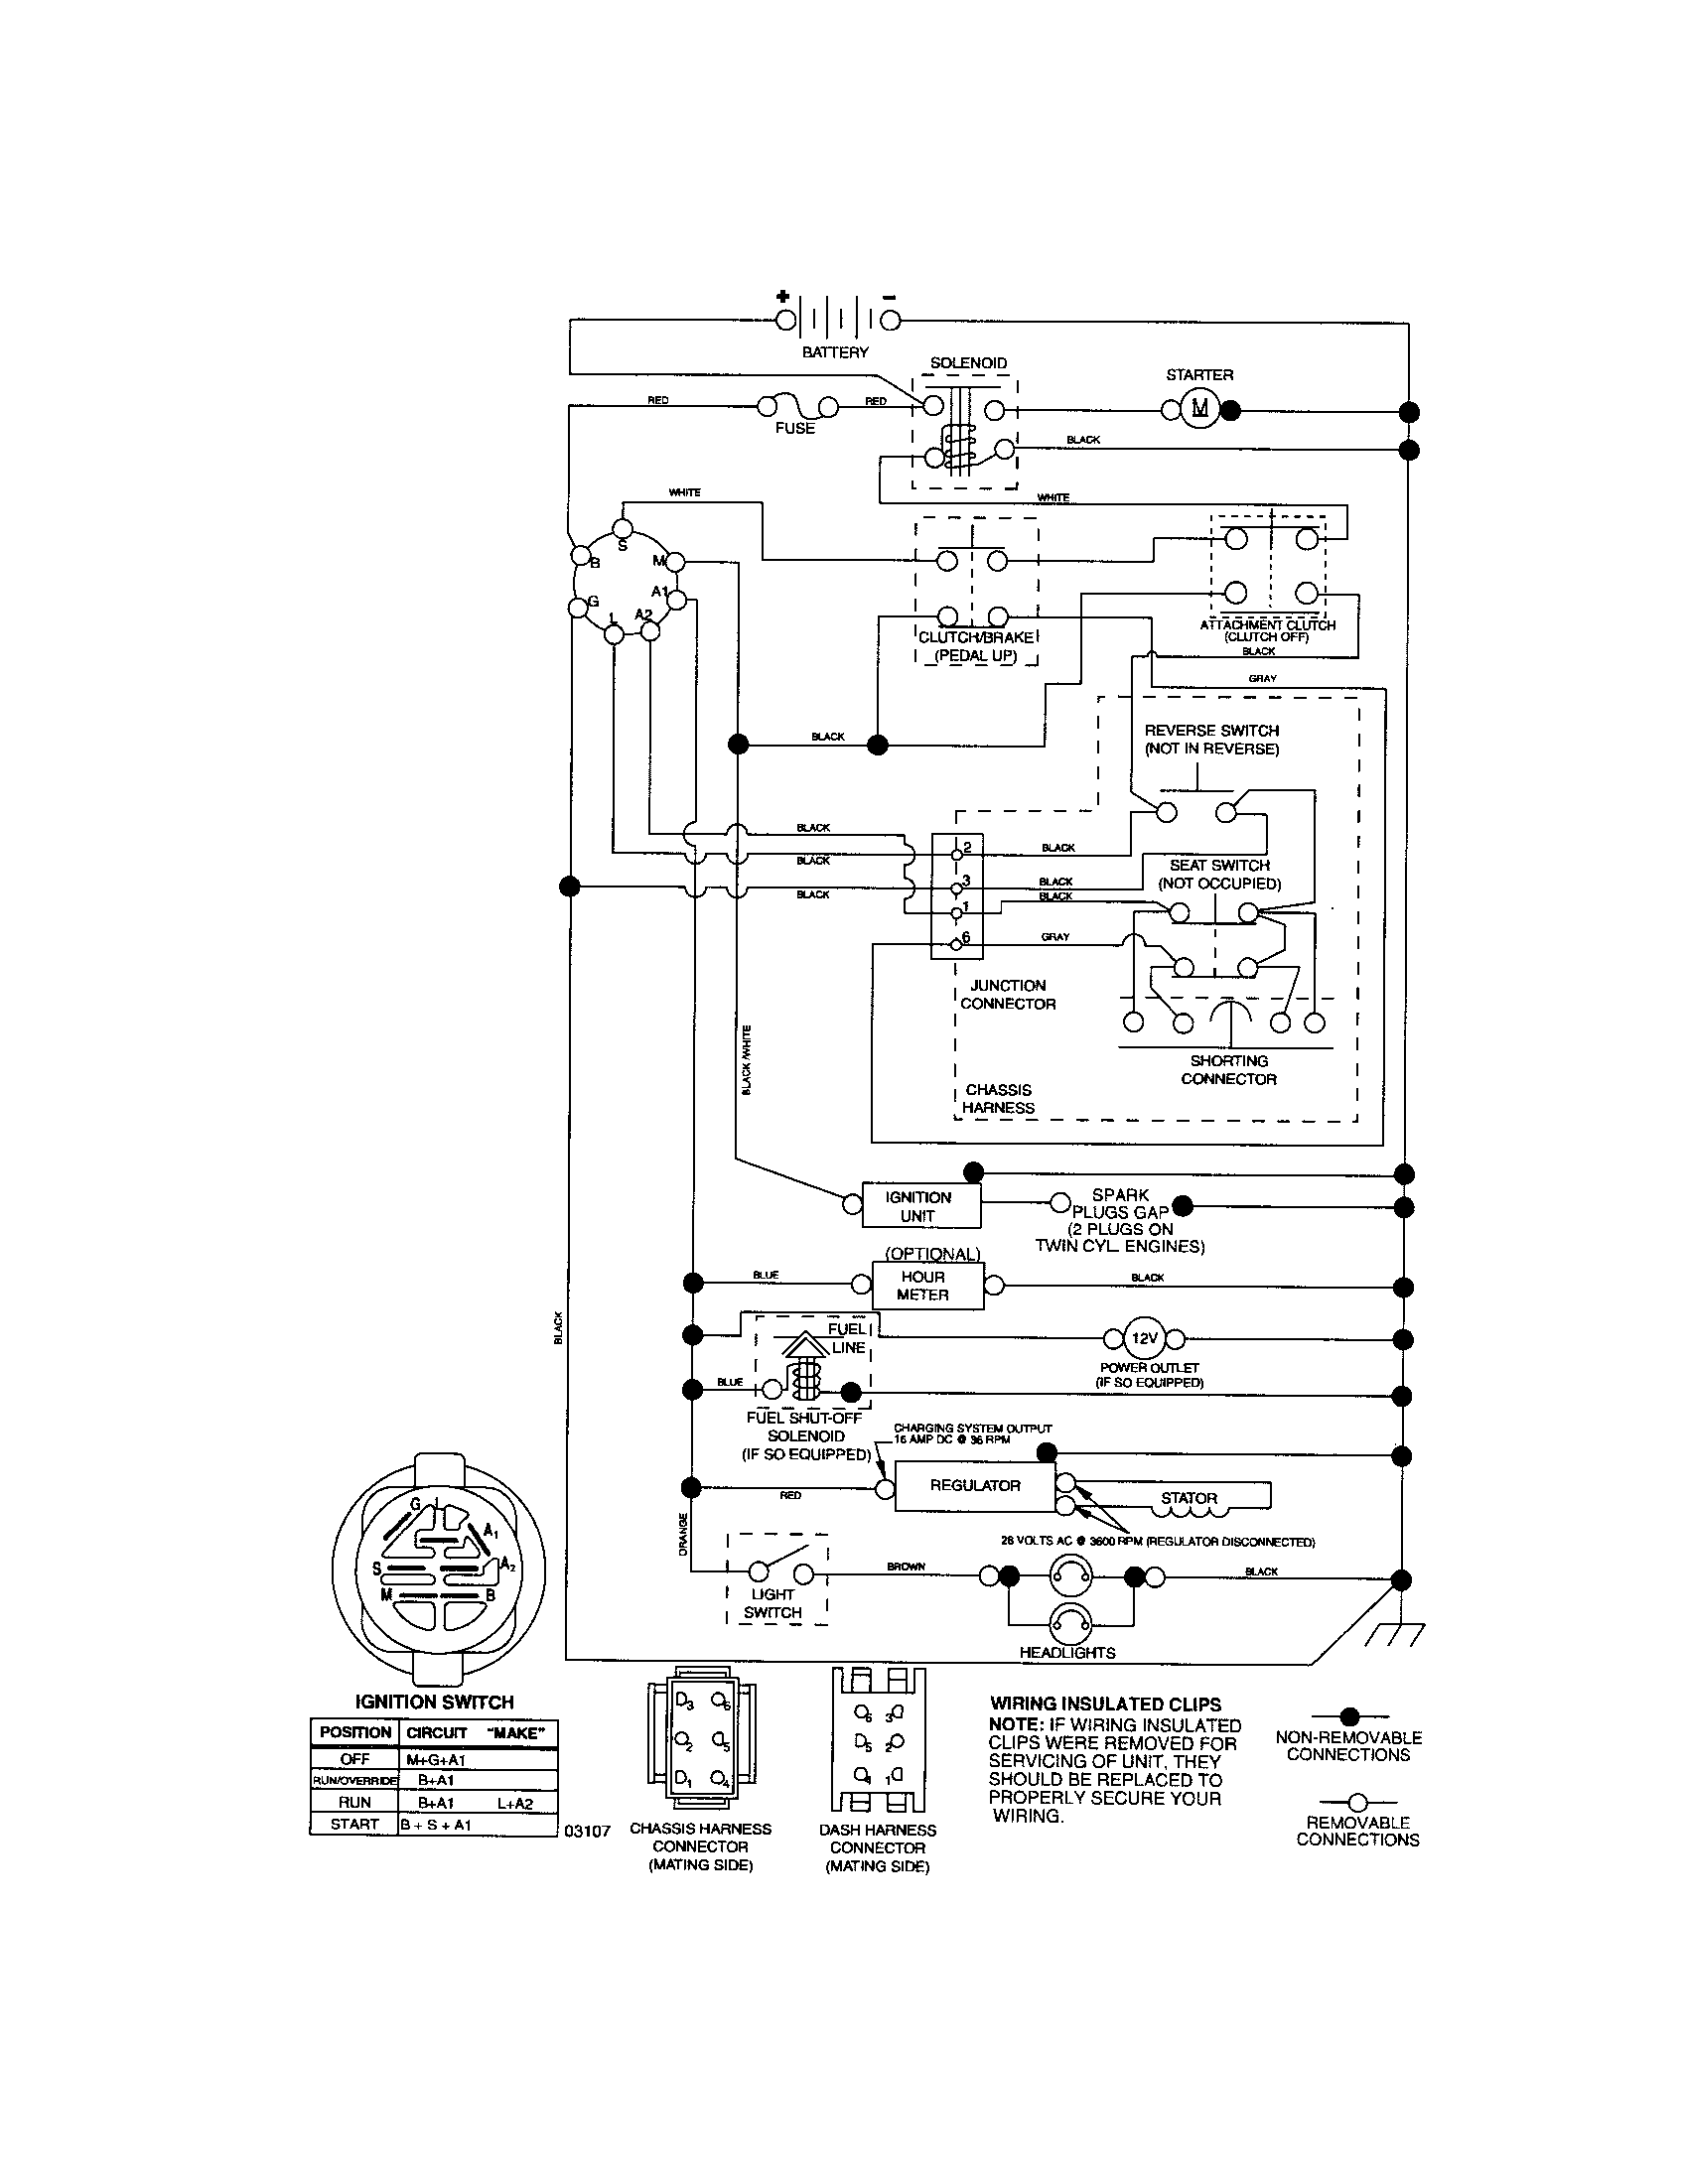 medium resolution of mtd wiring diagram manual trusted wiring diagram rh 3 16 5 gartenmoebel rupp de mtd riding mower wiring diagram schematic mtd riding lawn mower wiring